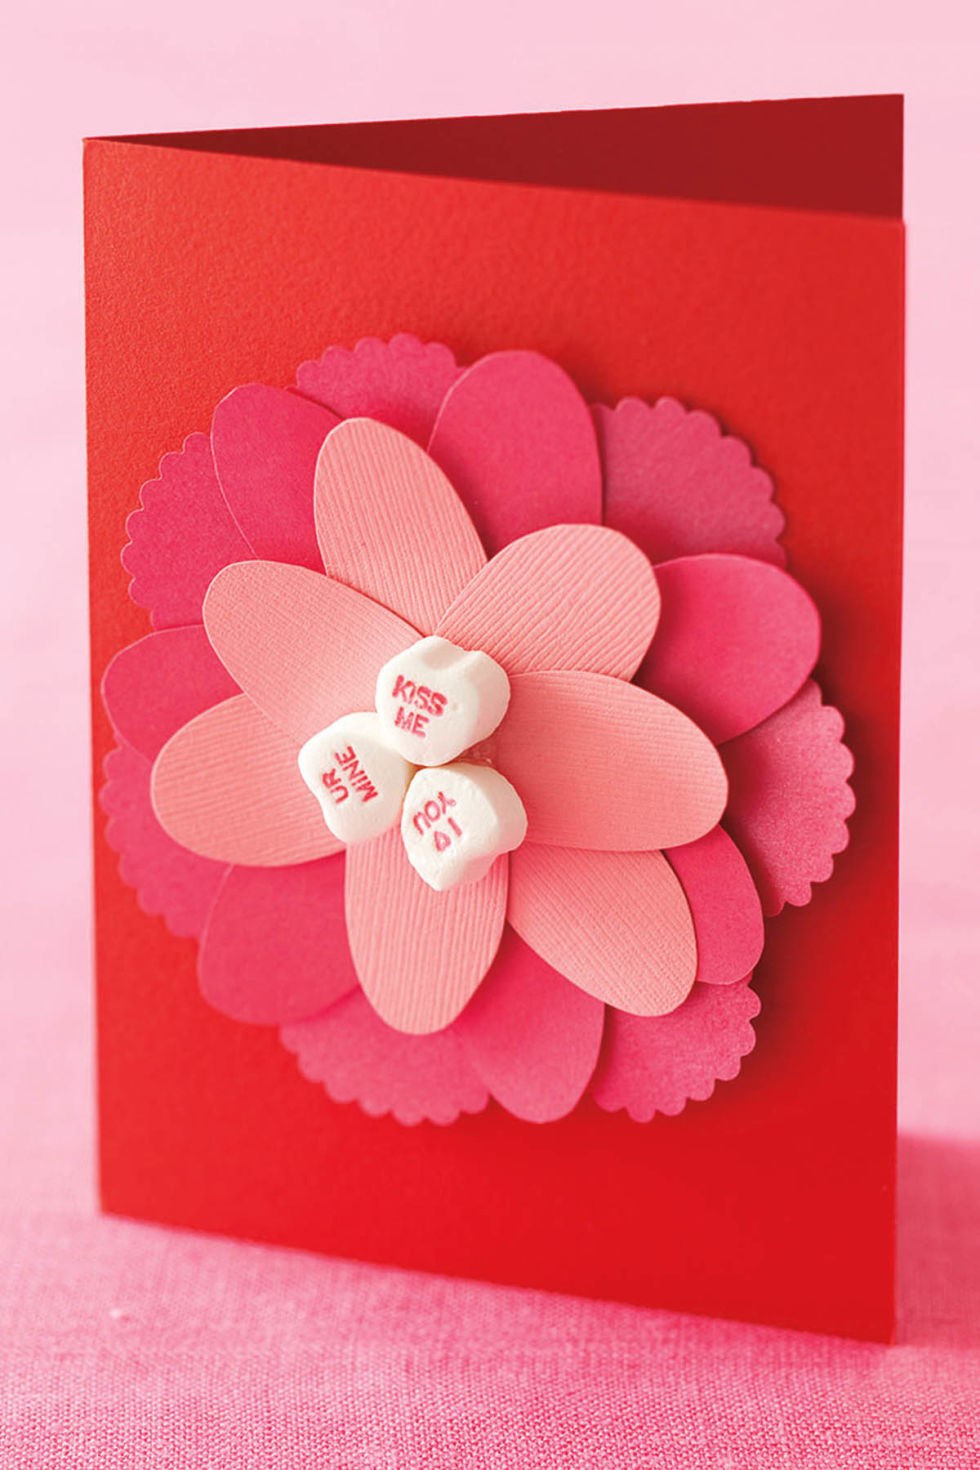 21 Valentines Day Crafts for Kids Fun Heart Arts and Crafts – Simple Valentines Day Cards